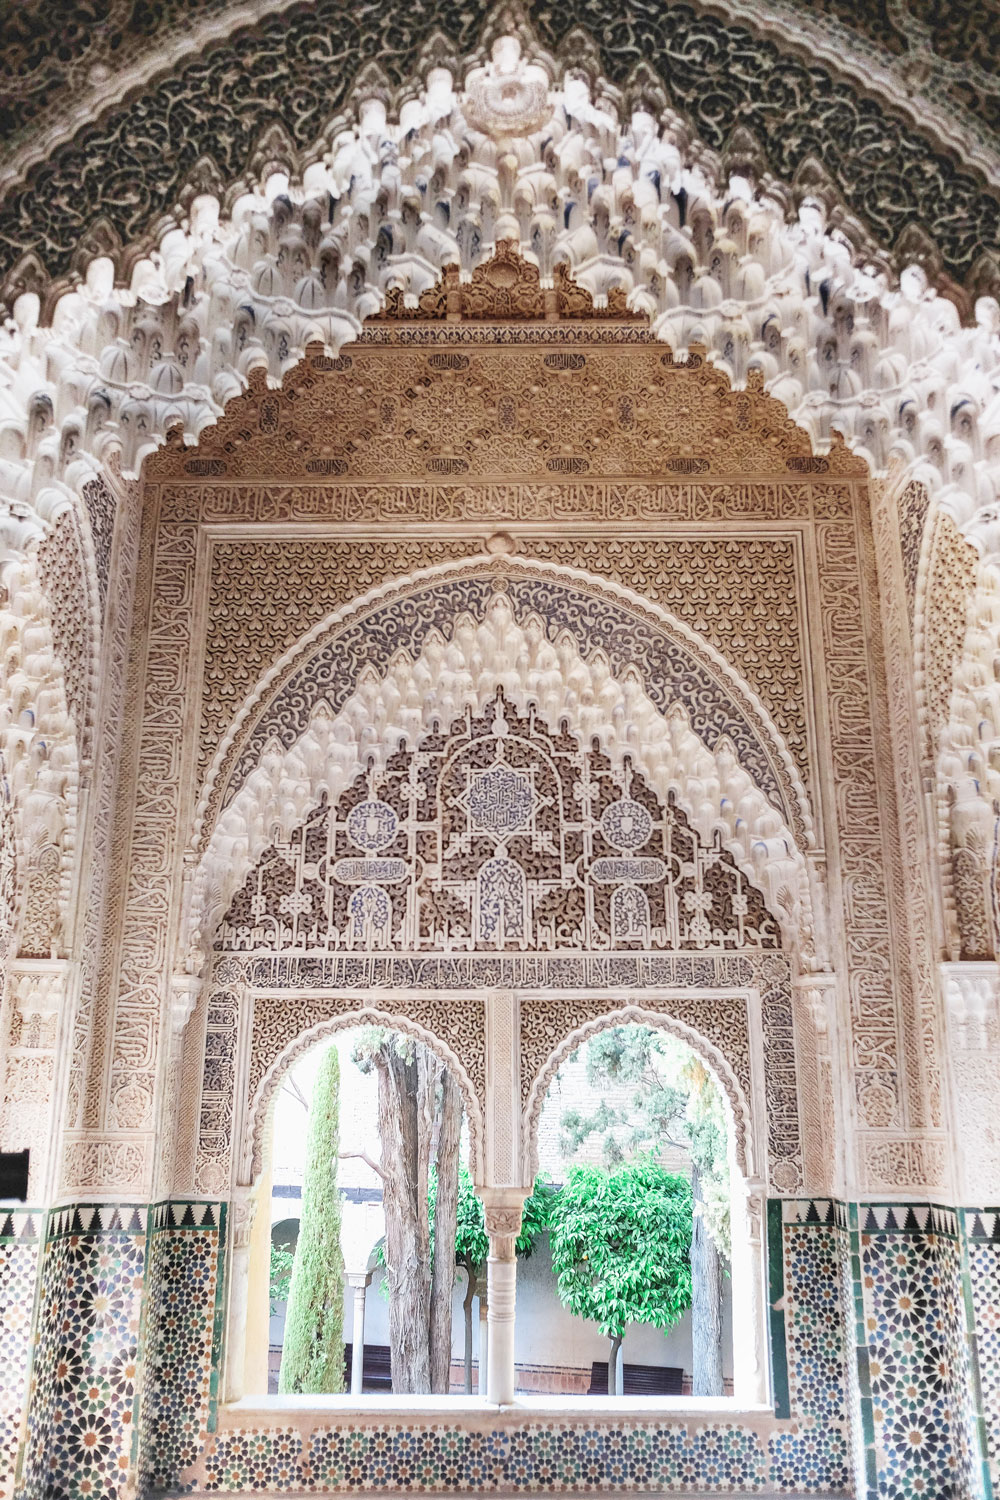 Spain travel tips, what to do in seville, seville weekend guide, seville travel guide, granada travel guide, frigiliana travel tips, costa del sol weekend guide, best views of the alhambra, alcazar granada guide, what to see in seville, what to see in granada, what to do in granada, spain travel guide by To Vogue or Bust